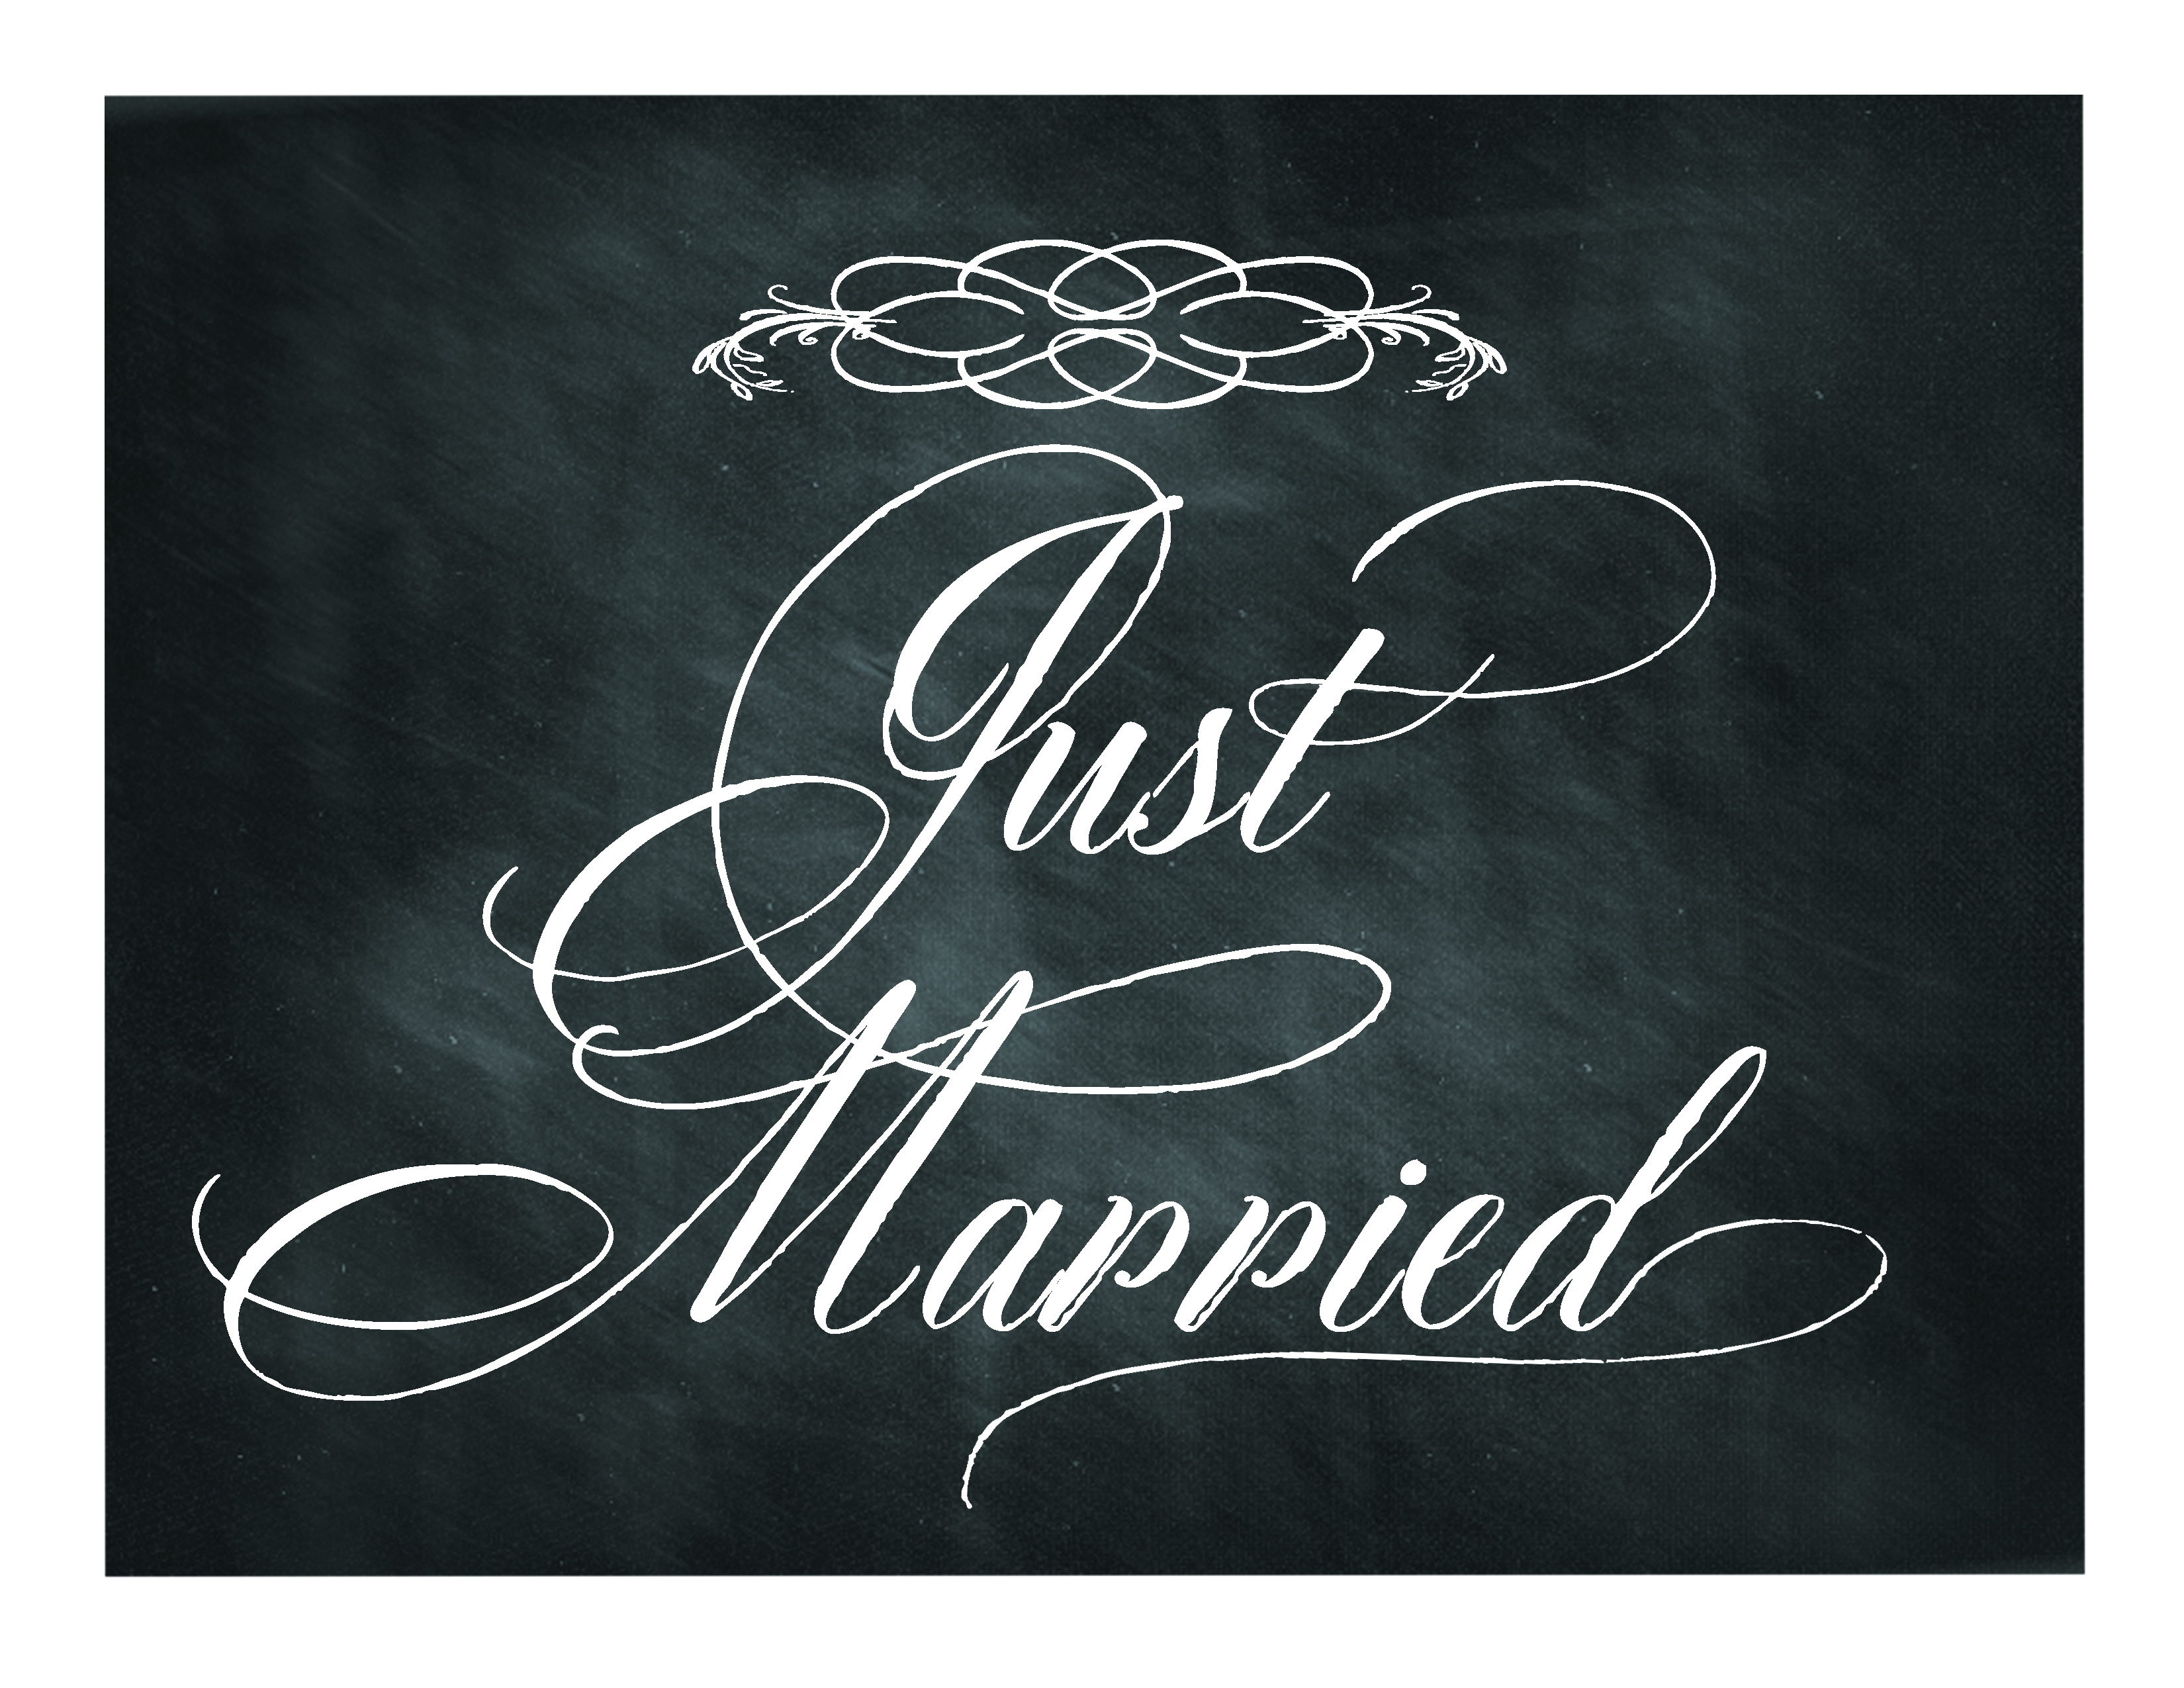 Free Printable Chalkboard Sign: Just Married   Lettering Art Studio - Just Married Free Printable